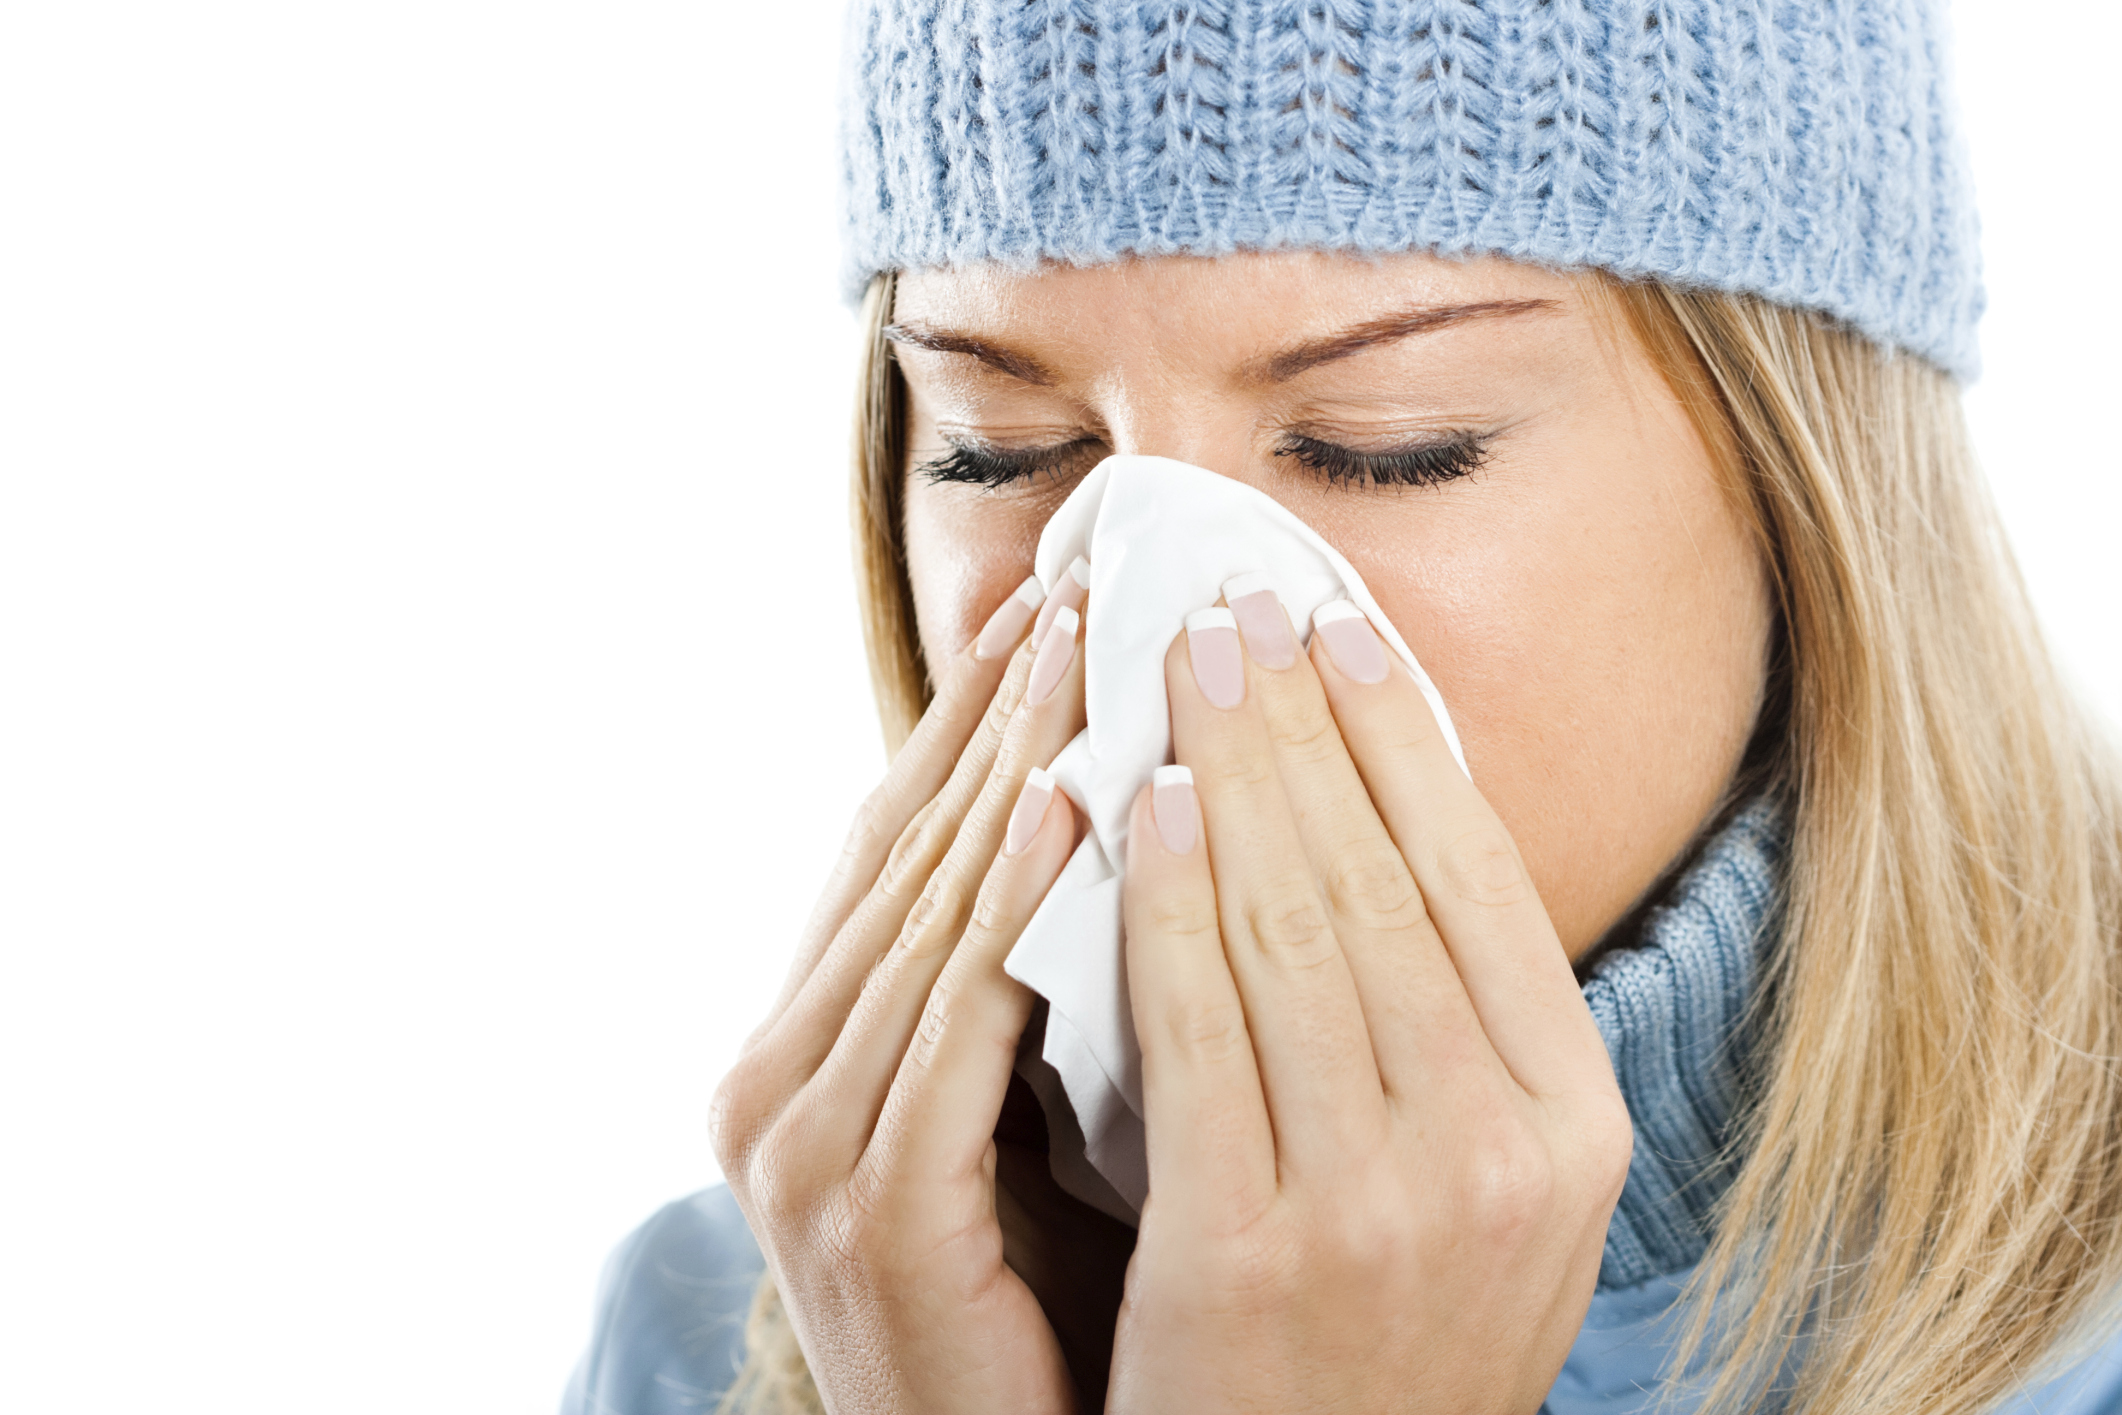 How to Stop Sores Inside the Nose